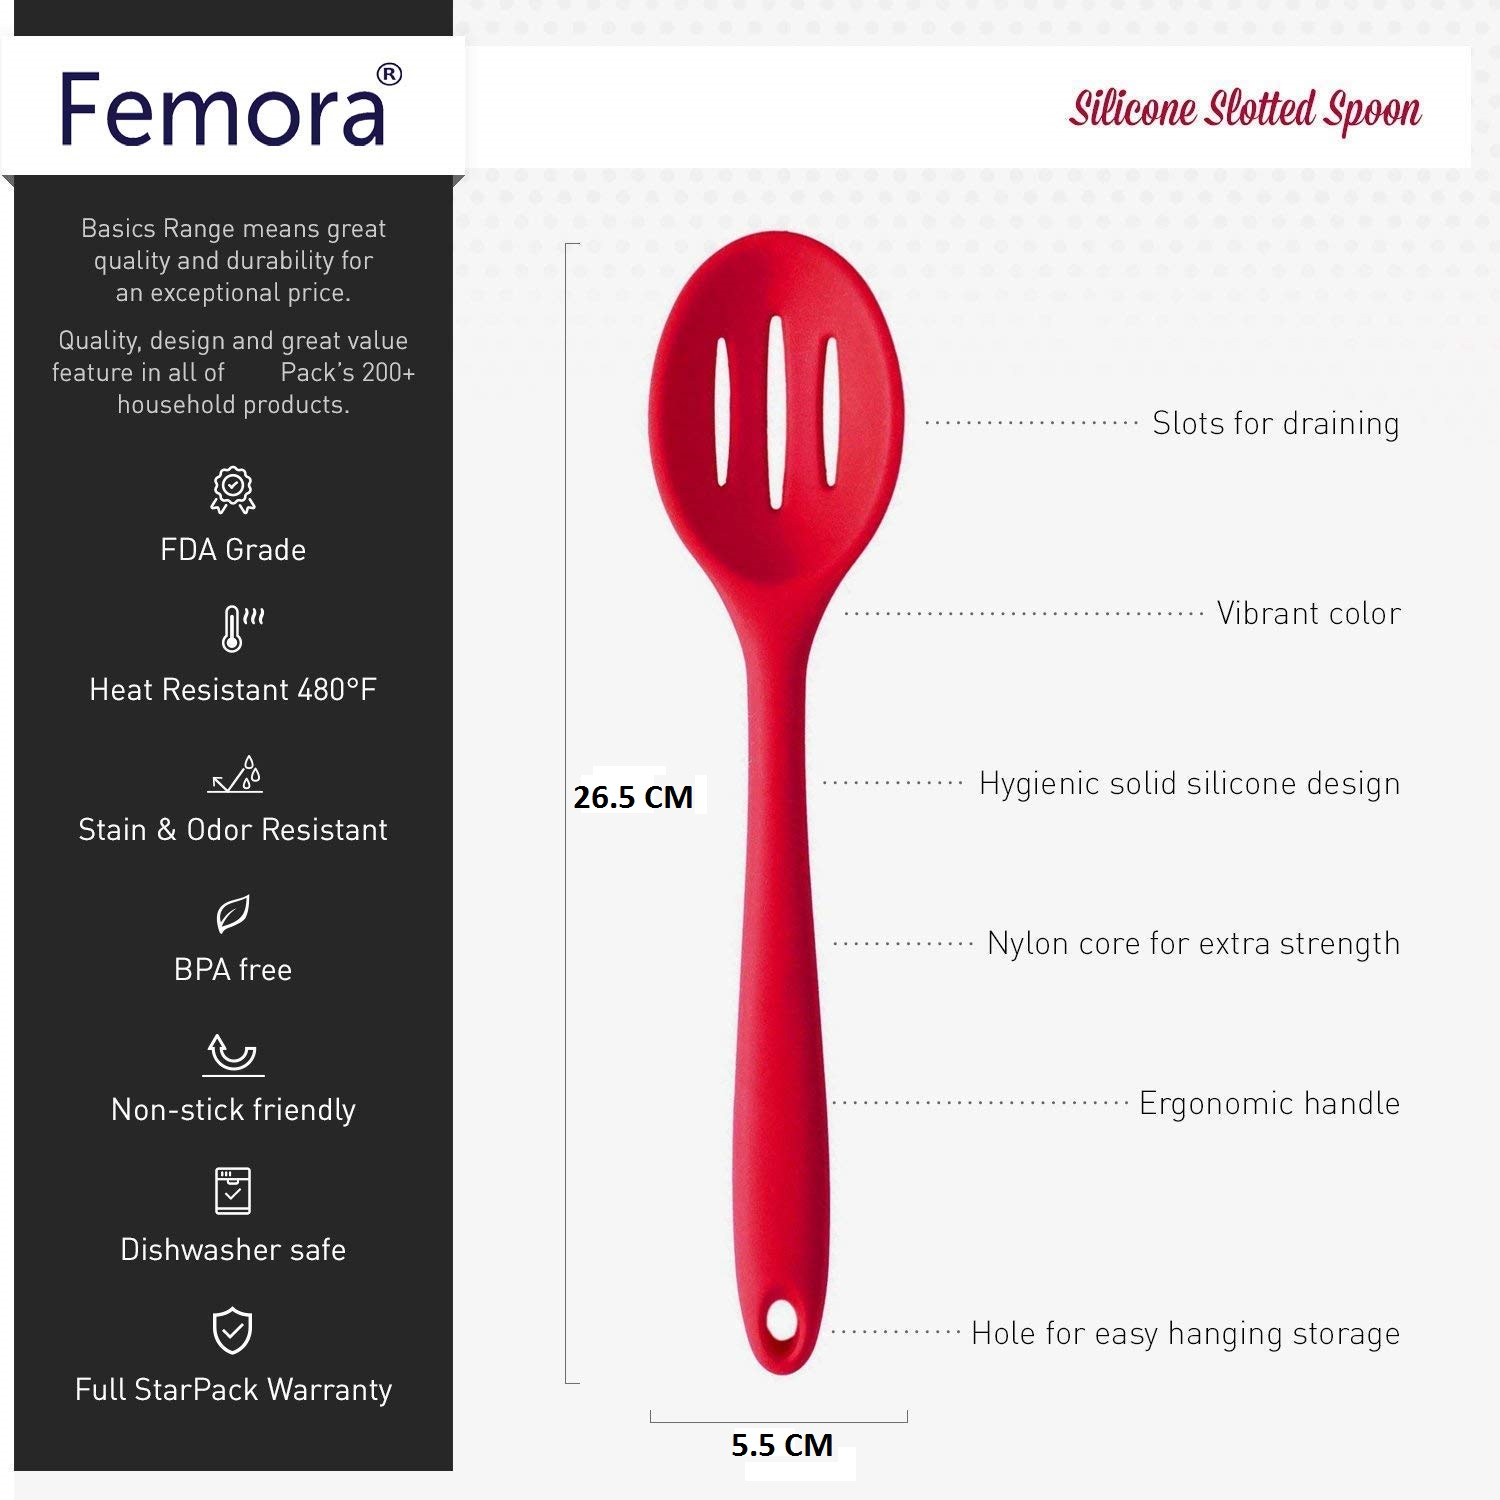 Femora Silicone Premium Slotted Spoon with Grip Handle, Red, 1 Year Warranty Set of 2